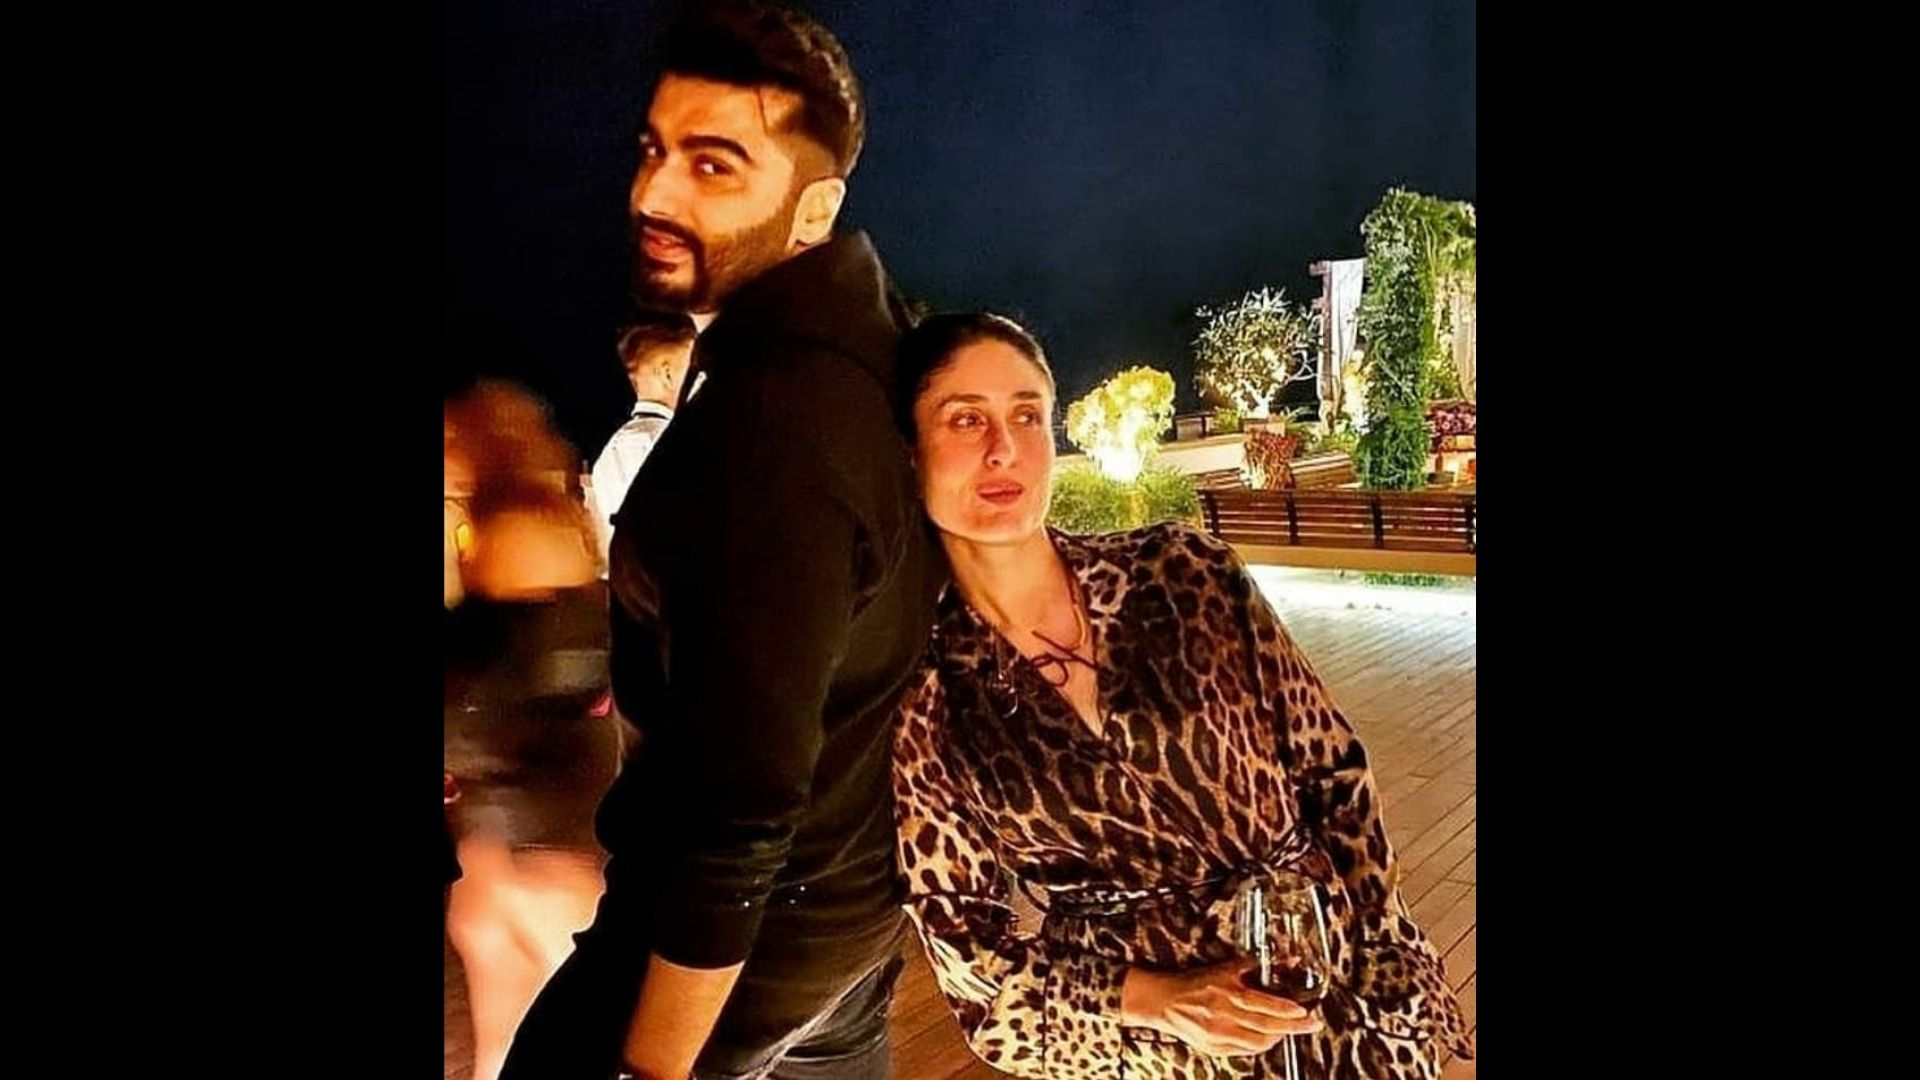 Arjun Kapoor Sends Belated B'day Wishes To Kareena Kapoor With An Adorable Photo Ft. Saif And Taimur; Bebo's Response Is Winning Hearts